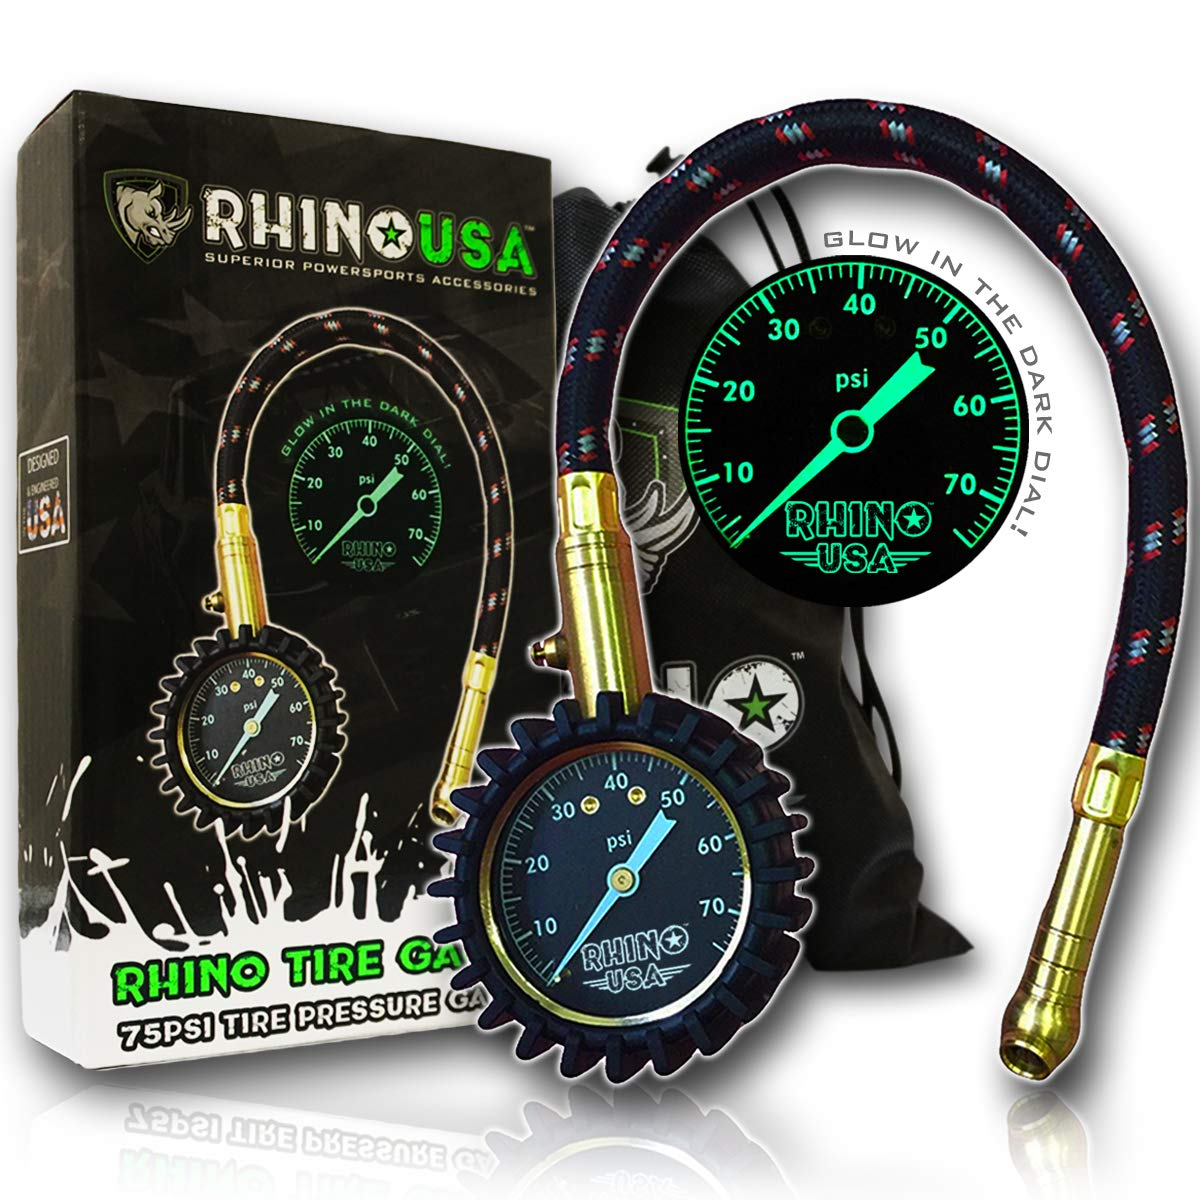 Rhino USA Heavy Duty Tire Pressure Gauge (0-75 PSI) - Certified ANSI B40.1 Accurate, Large 2'' Easy Read Glow Dial, Premium Braided Hose, Solid Brass Hardware, Best for Any Car, Truck, Motorcycle, RV